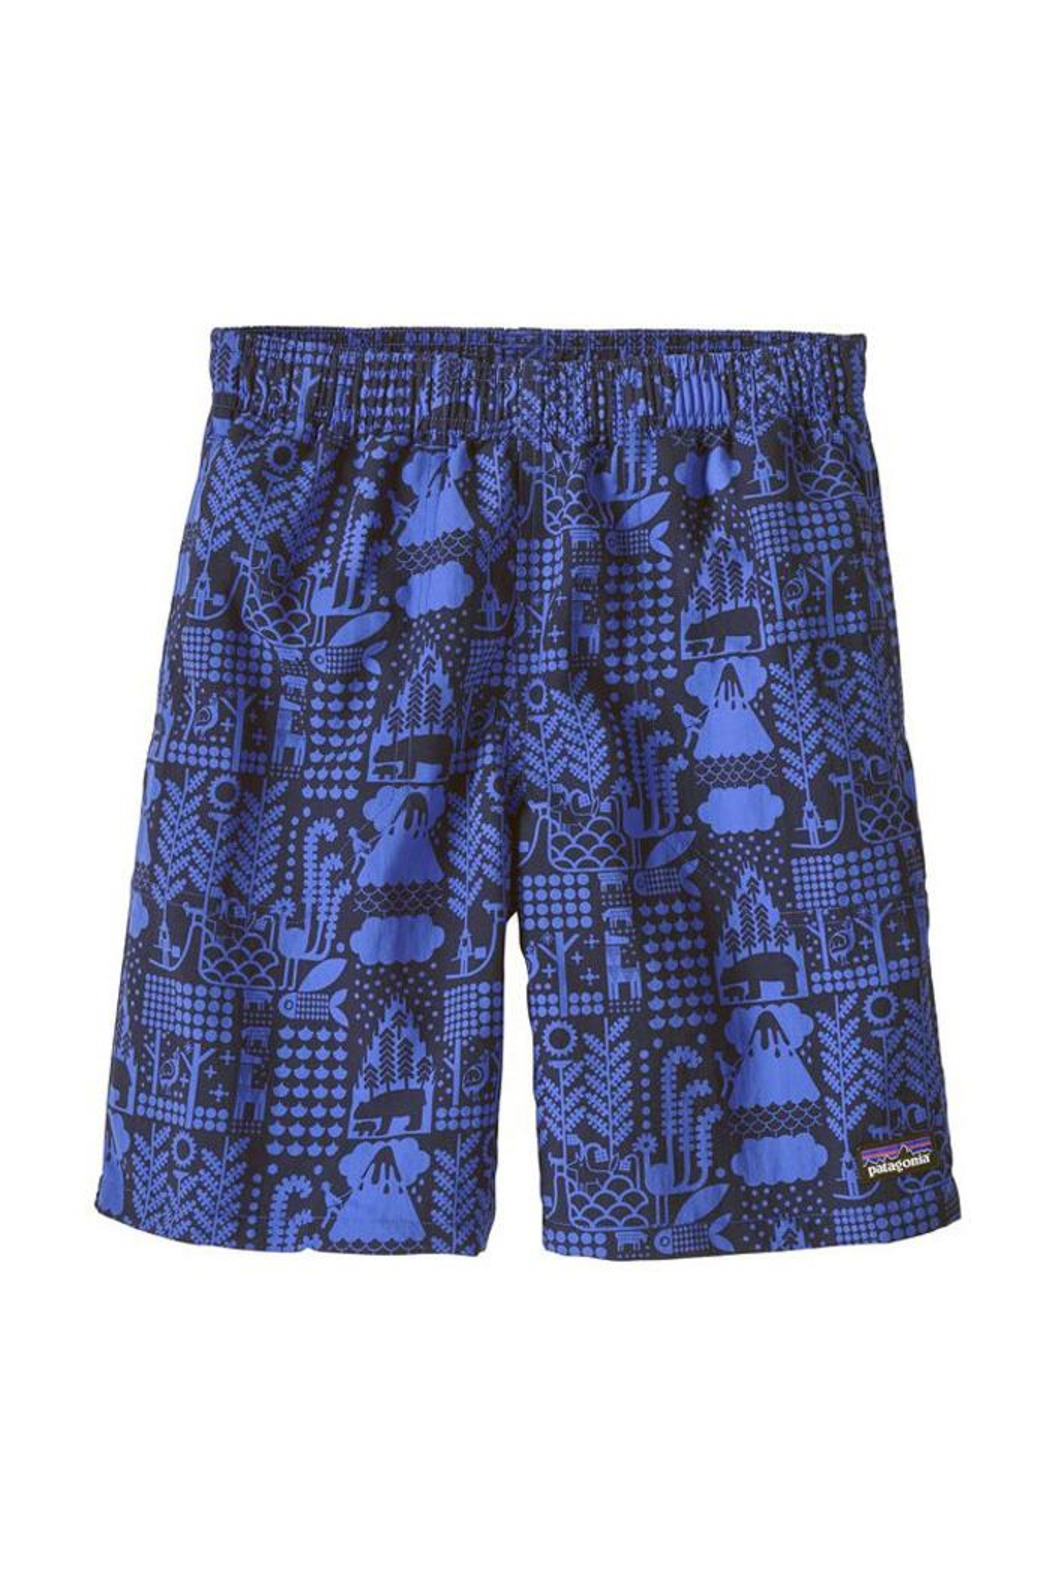 Patagonia Boys' Baggies Shorts - Main Image